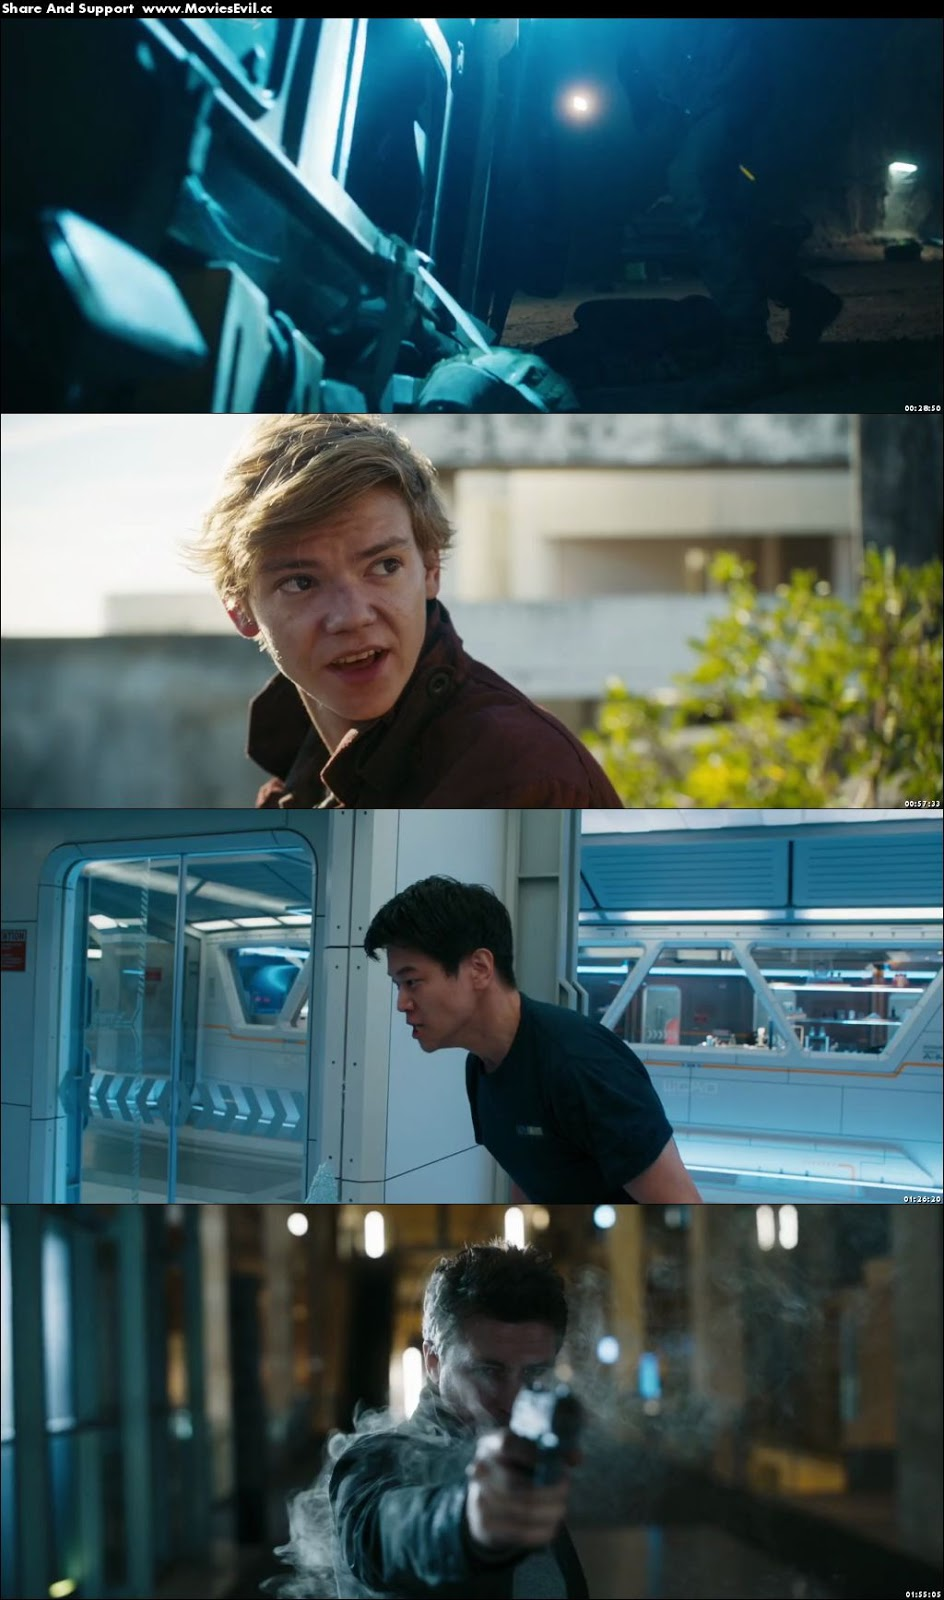 Maze Runner The Death Cure 2018 English 720p HDRip x264 Free Download,Maze Runner The Death Cure 2018 torrent download,Maze Runner The Death Cure 2018 direct link download,Maze Runner The Death Cure 2018 watch online hindi dubbed,Maze Runner The Death Cure 2018 full movie dual audio download,Maze Runner The Death Cure 2018Maze Runner The Death Cure 2018 hindi dubbed 720p download,Maze Runner The Death Cure 2018 worldfree4u download